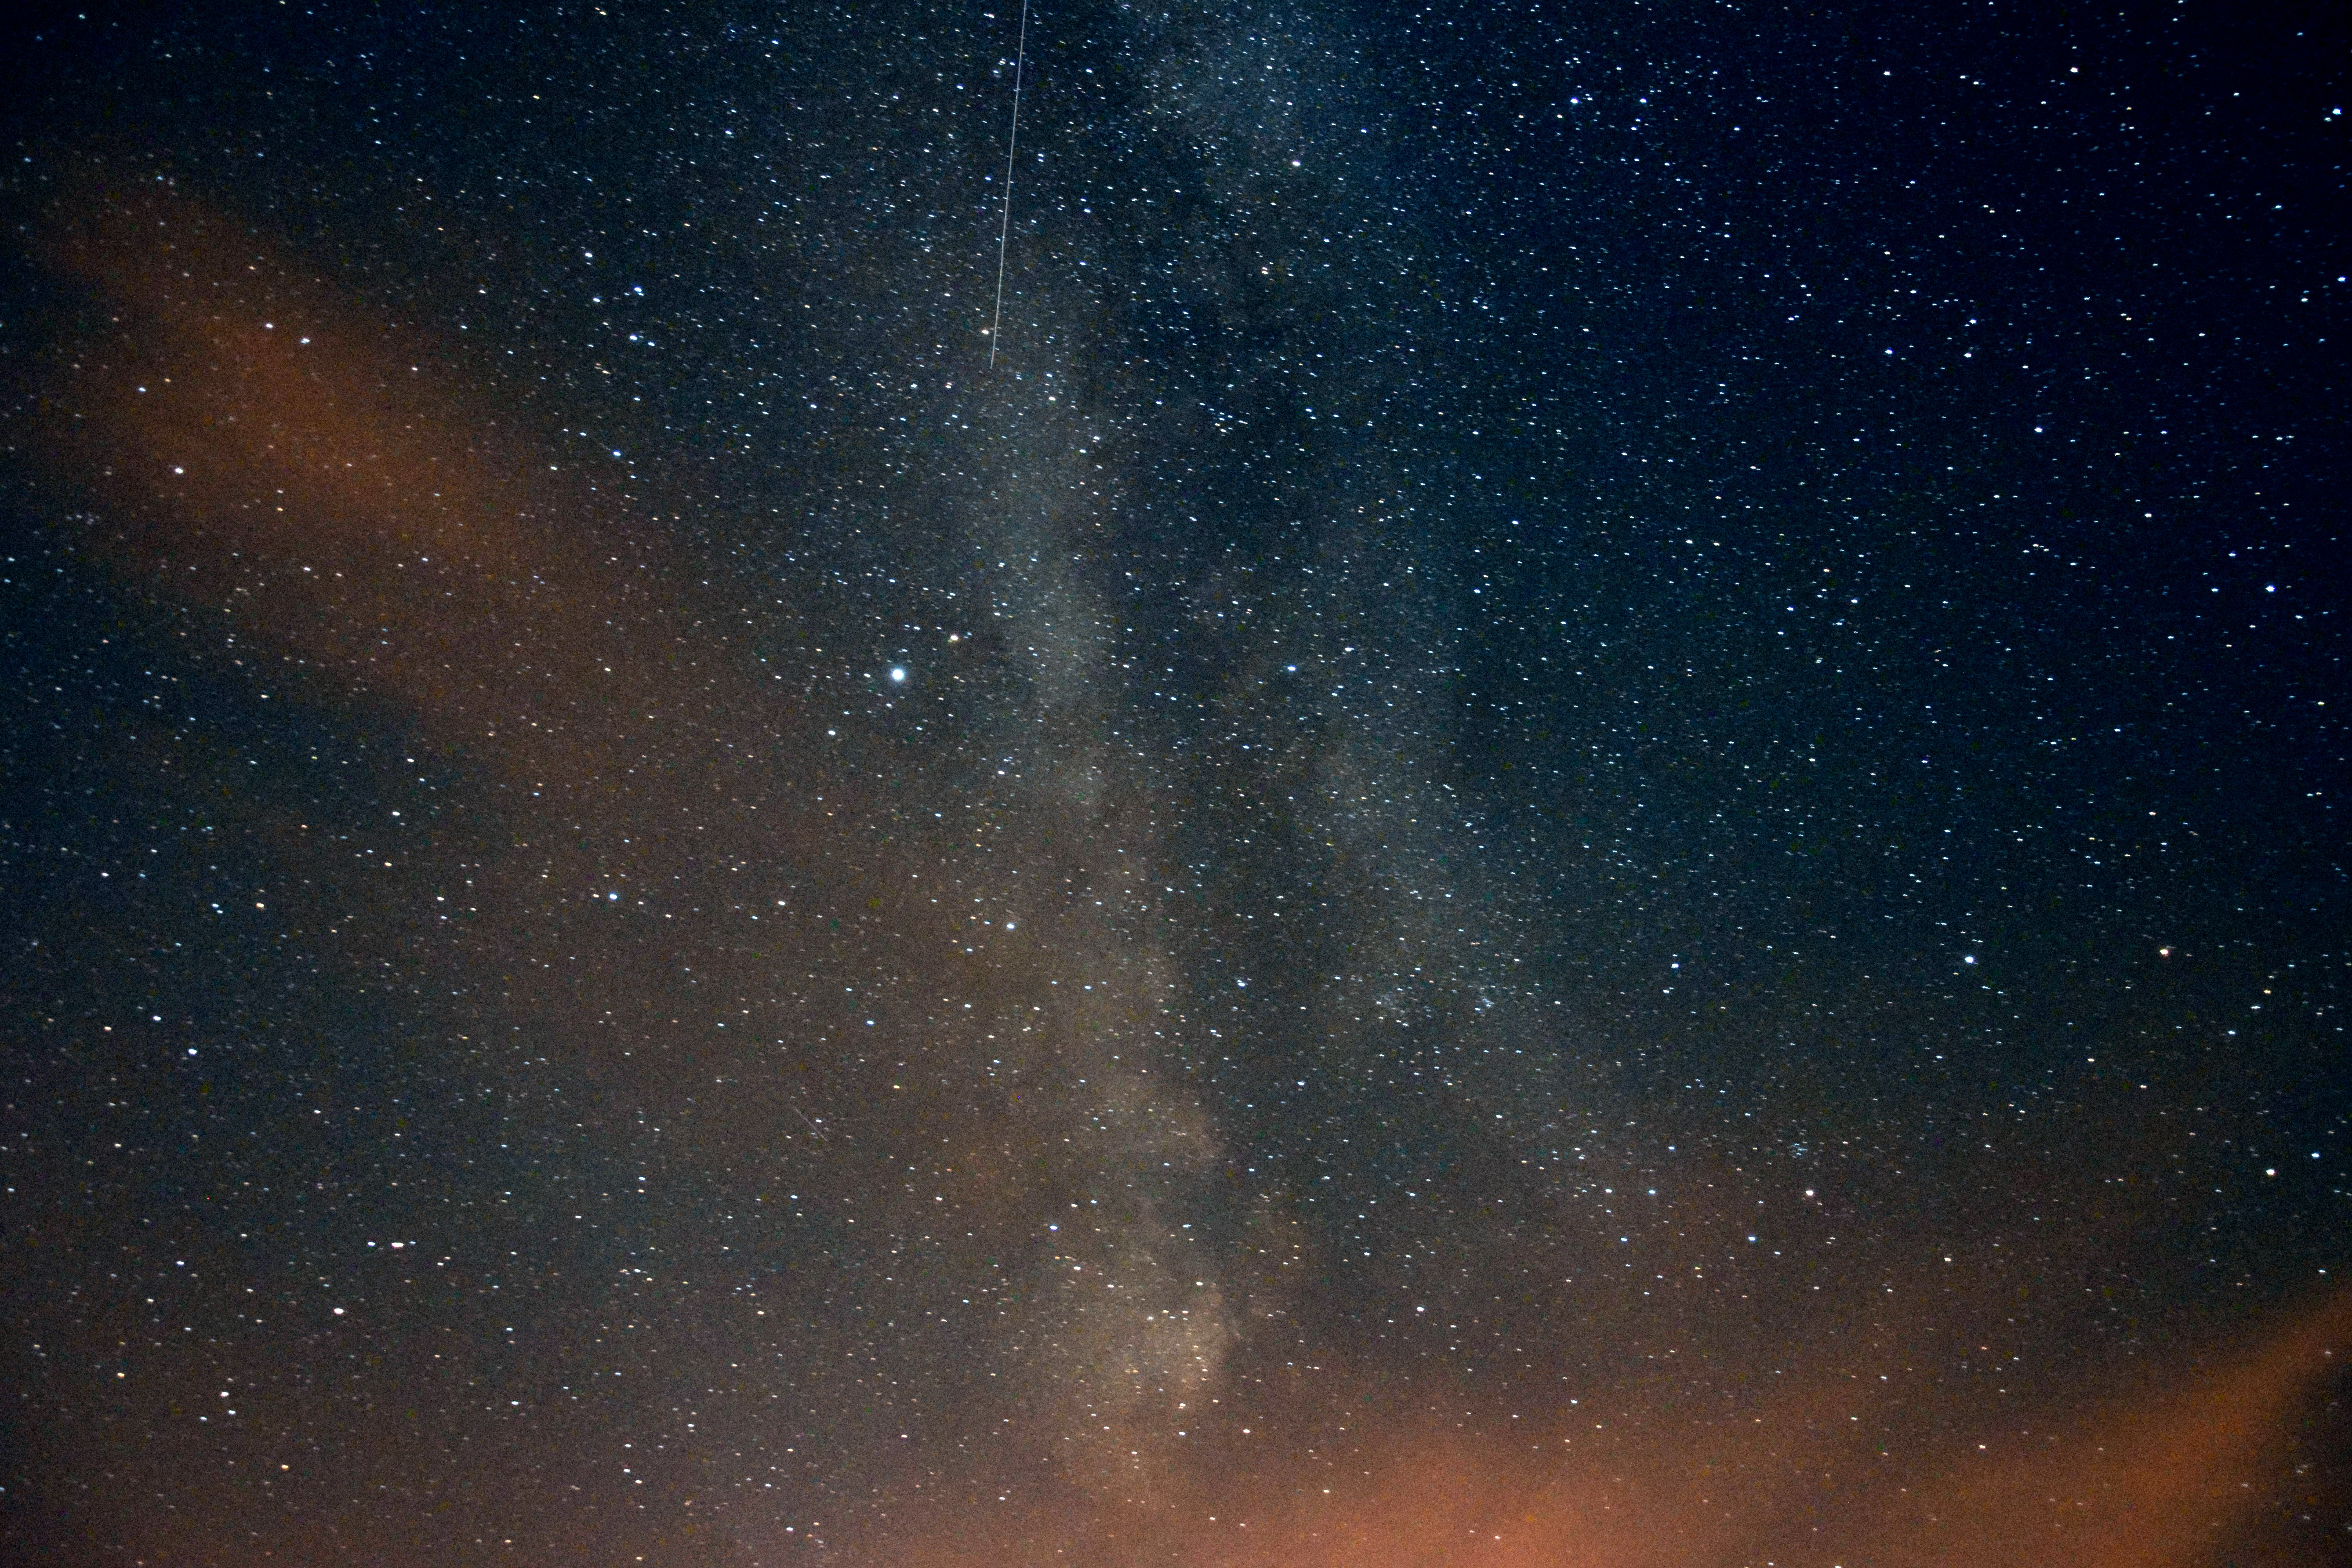 low angle photo of milky way galaxy